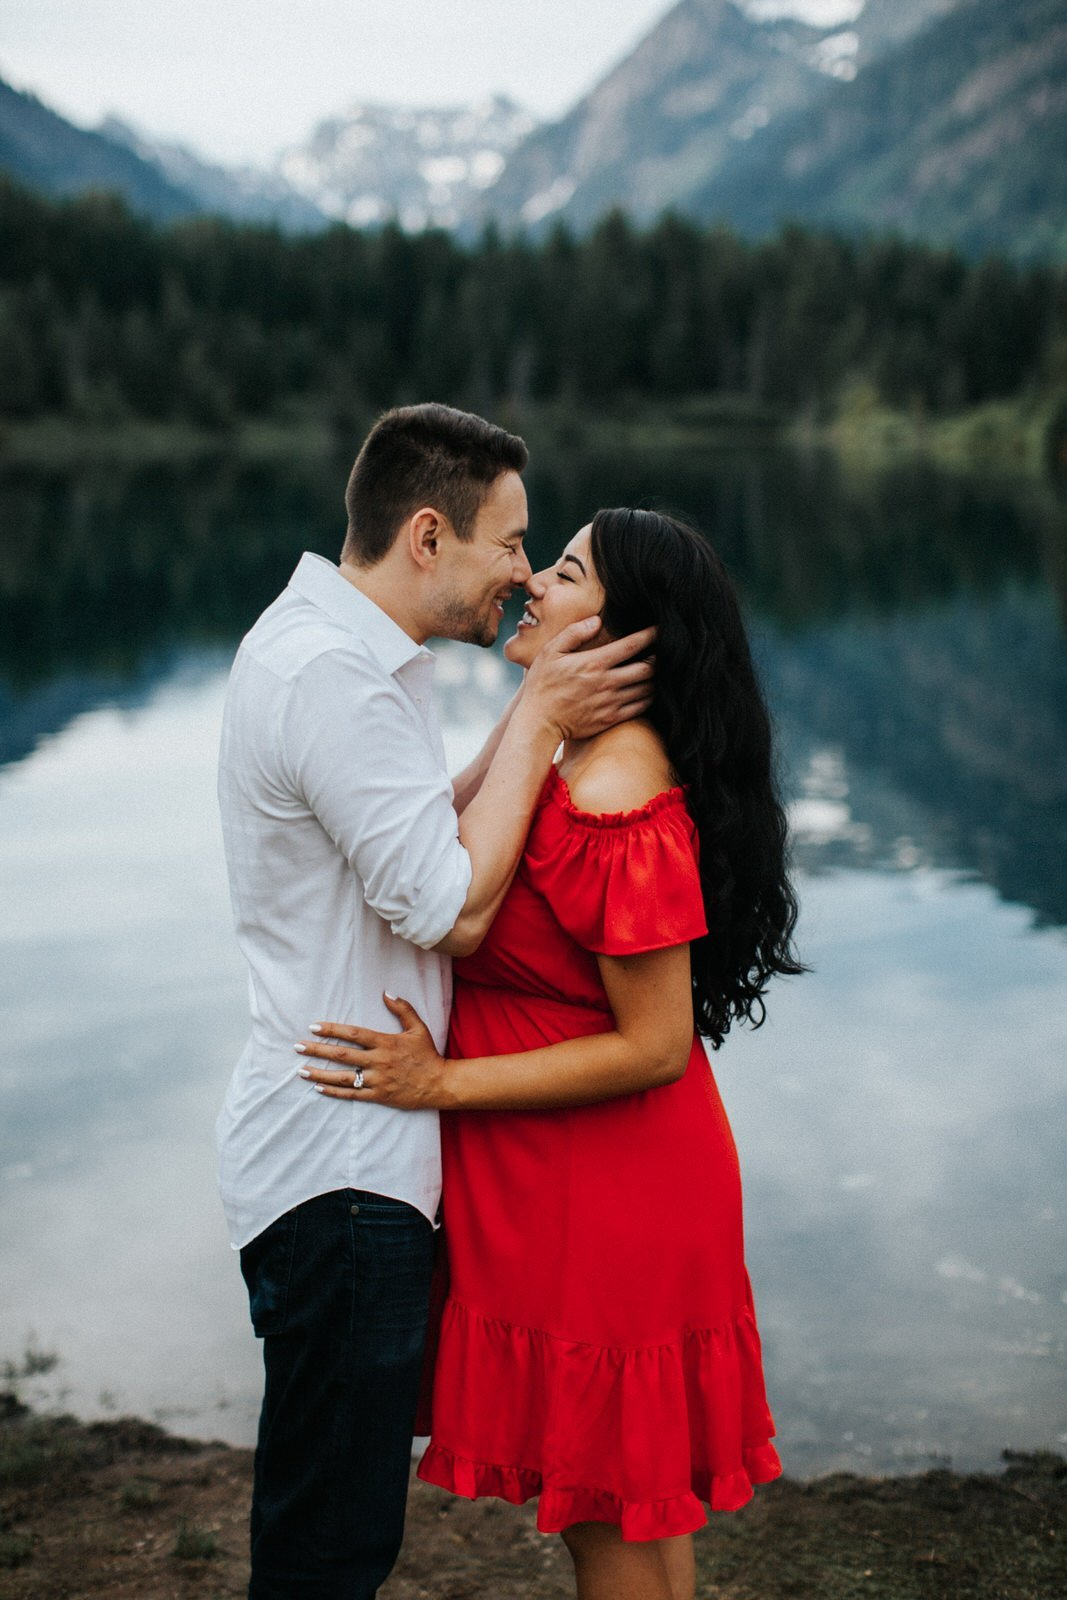 A couple laughs and kisses during their engagement session at a pnw mountain lake